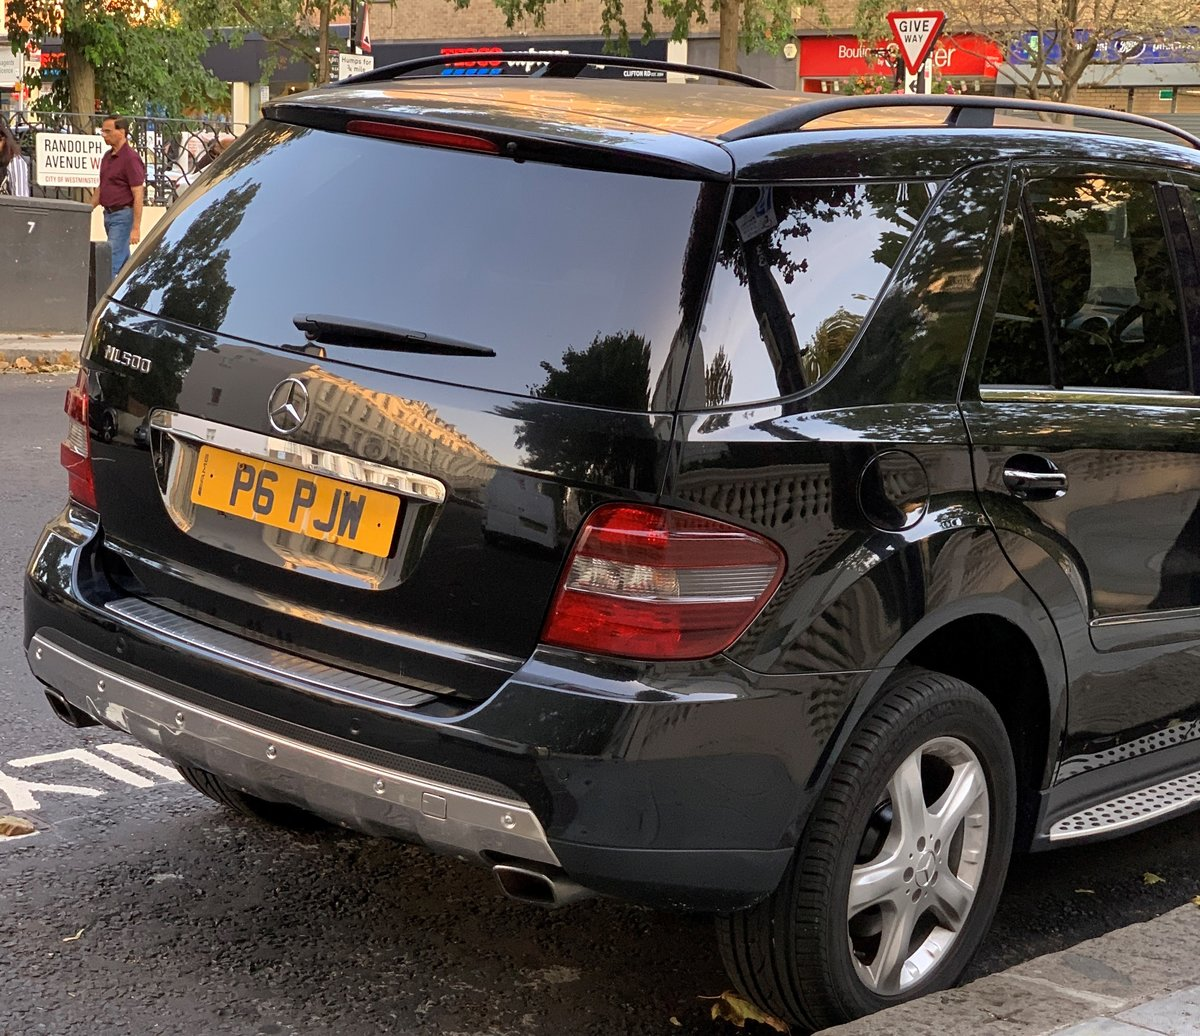 2006 Mercedes 5.0 ML500 Sport 7G-Tronic 4x4 5dr Petrol For Sale (picture 2 of 6)